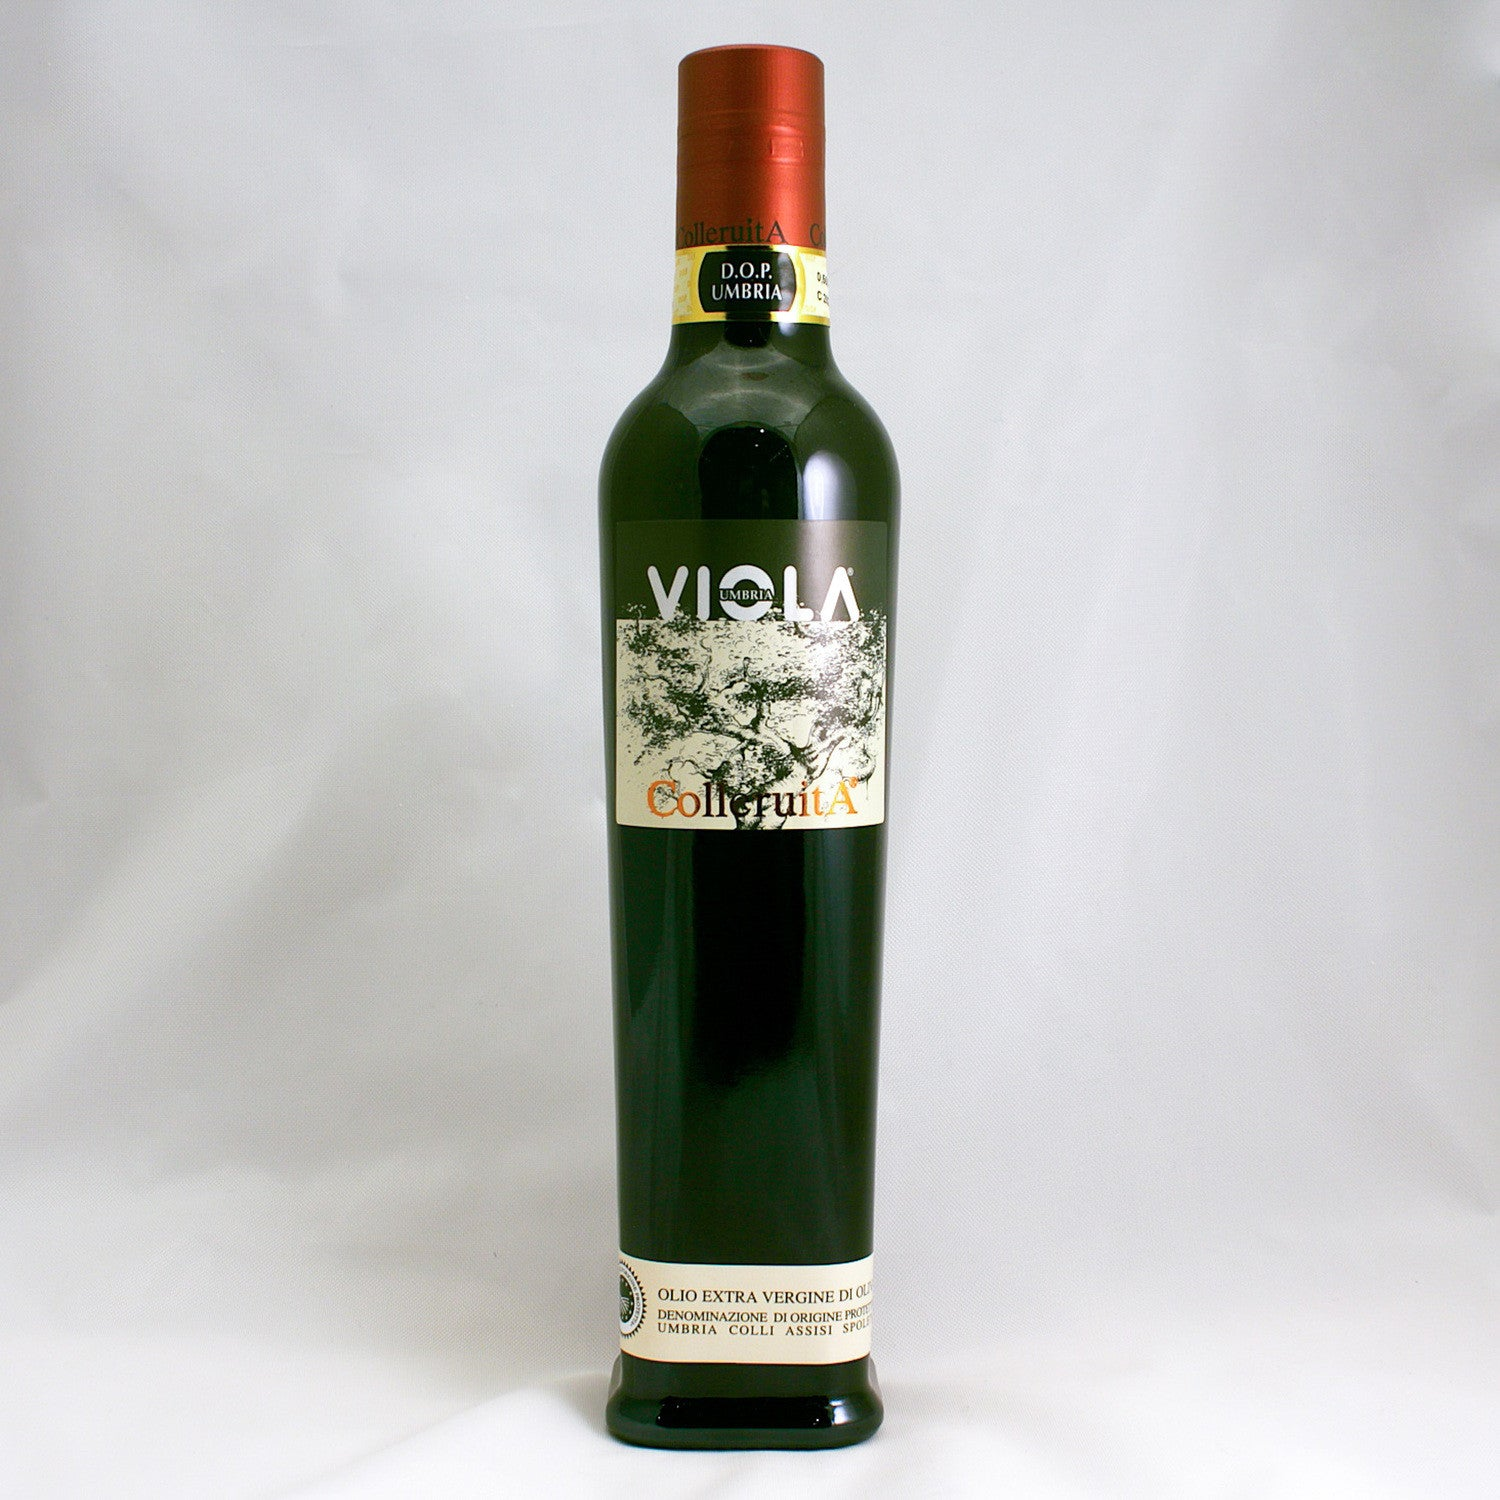 Viola Colleruita - Extra Virgin Olive Oil